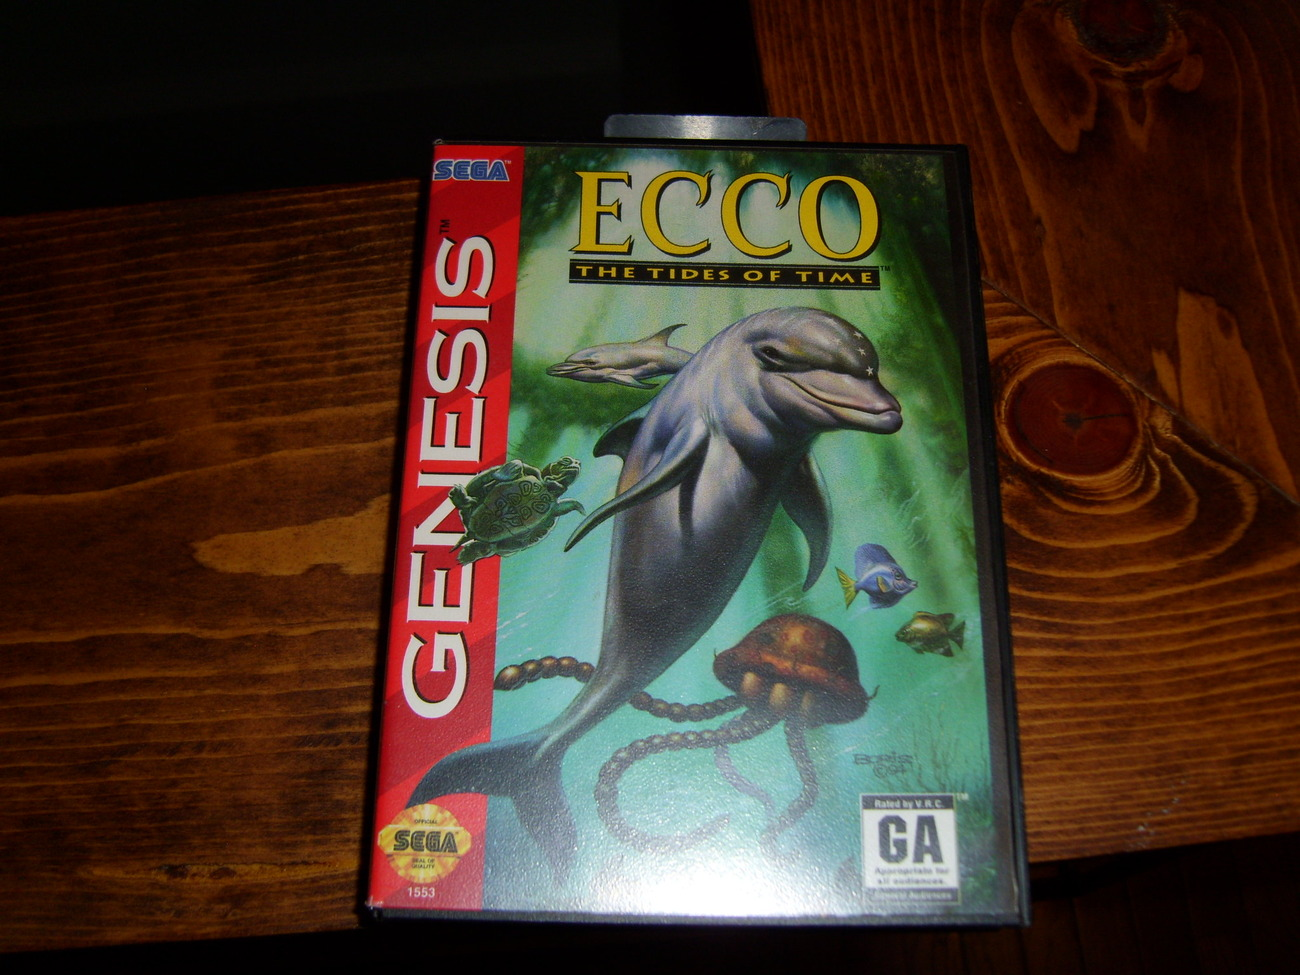 Primary image for Ecco Tides of Time Sega Genesis game